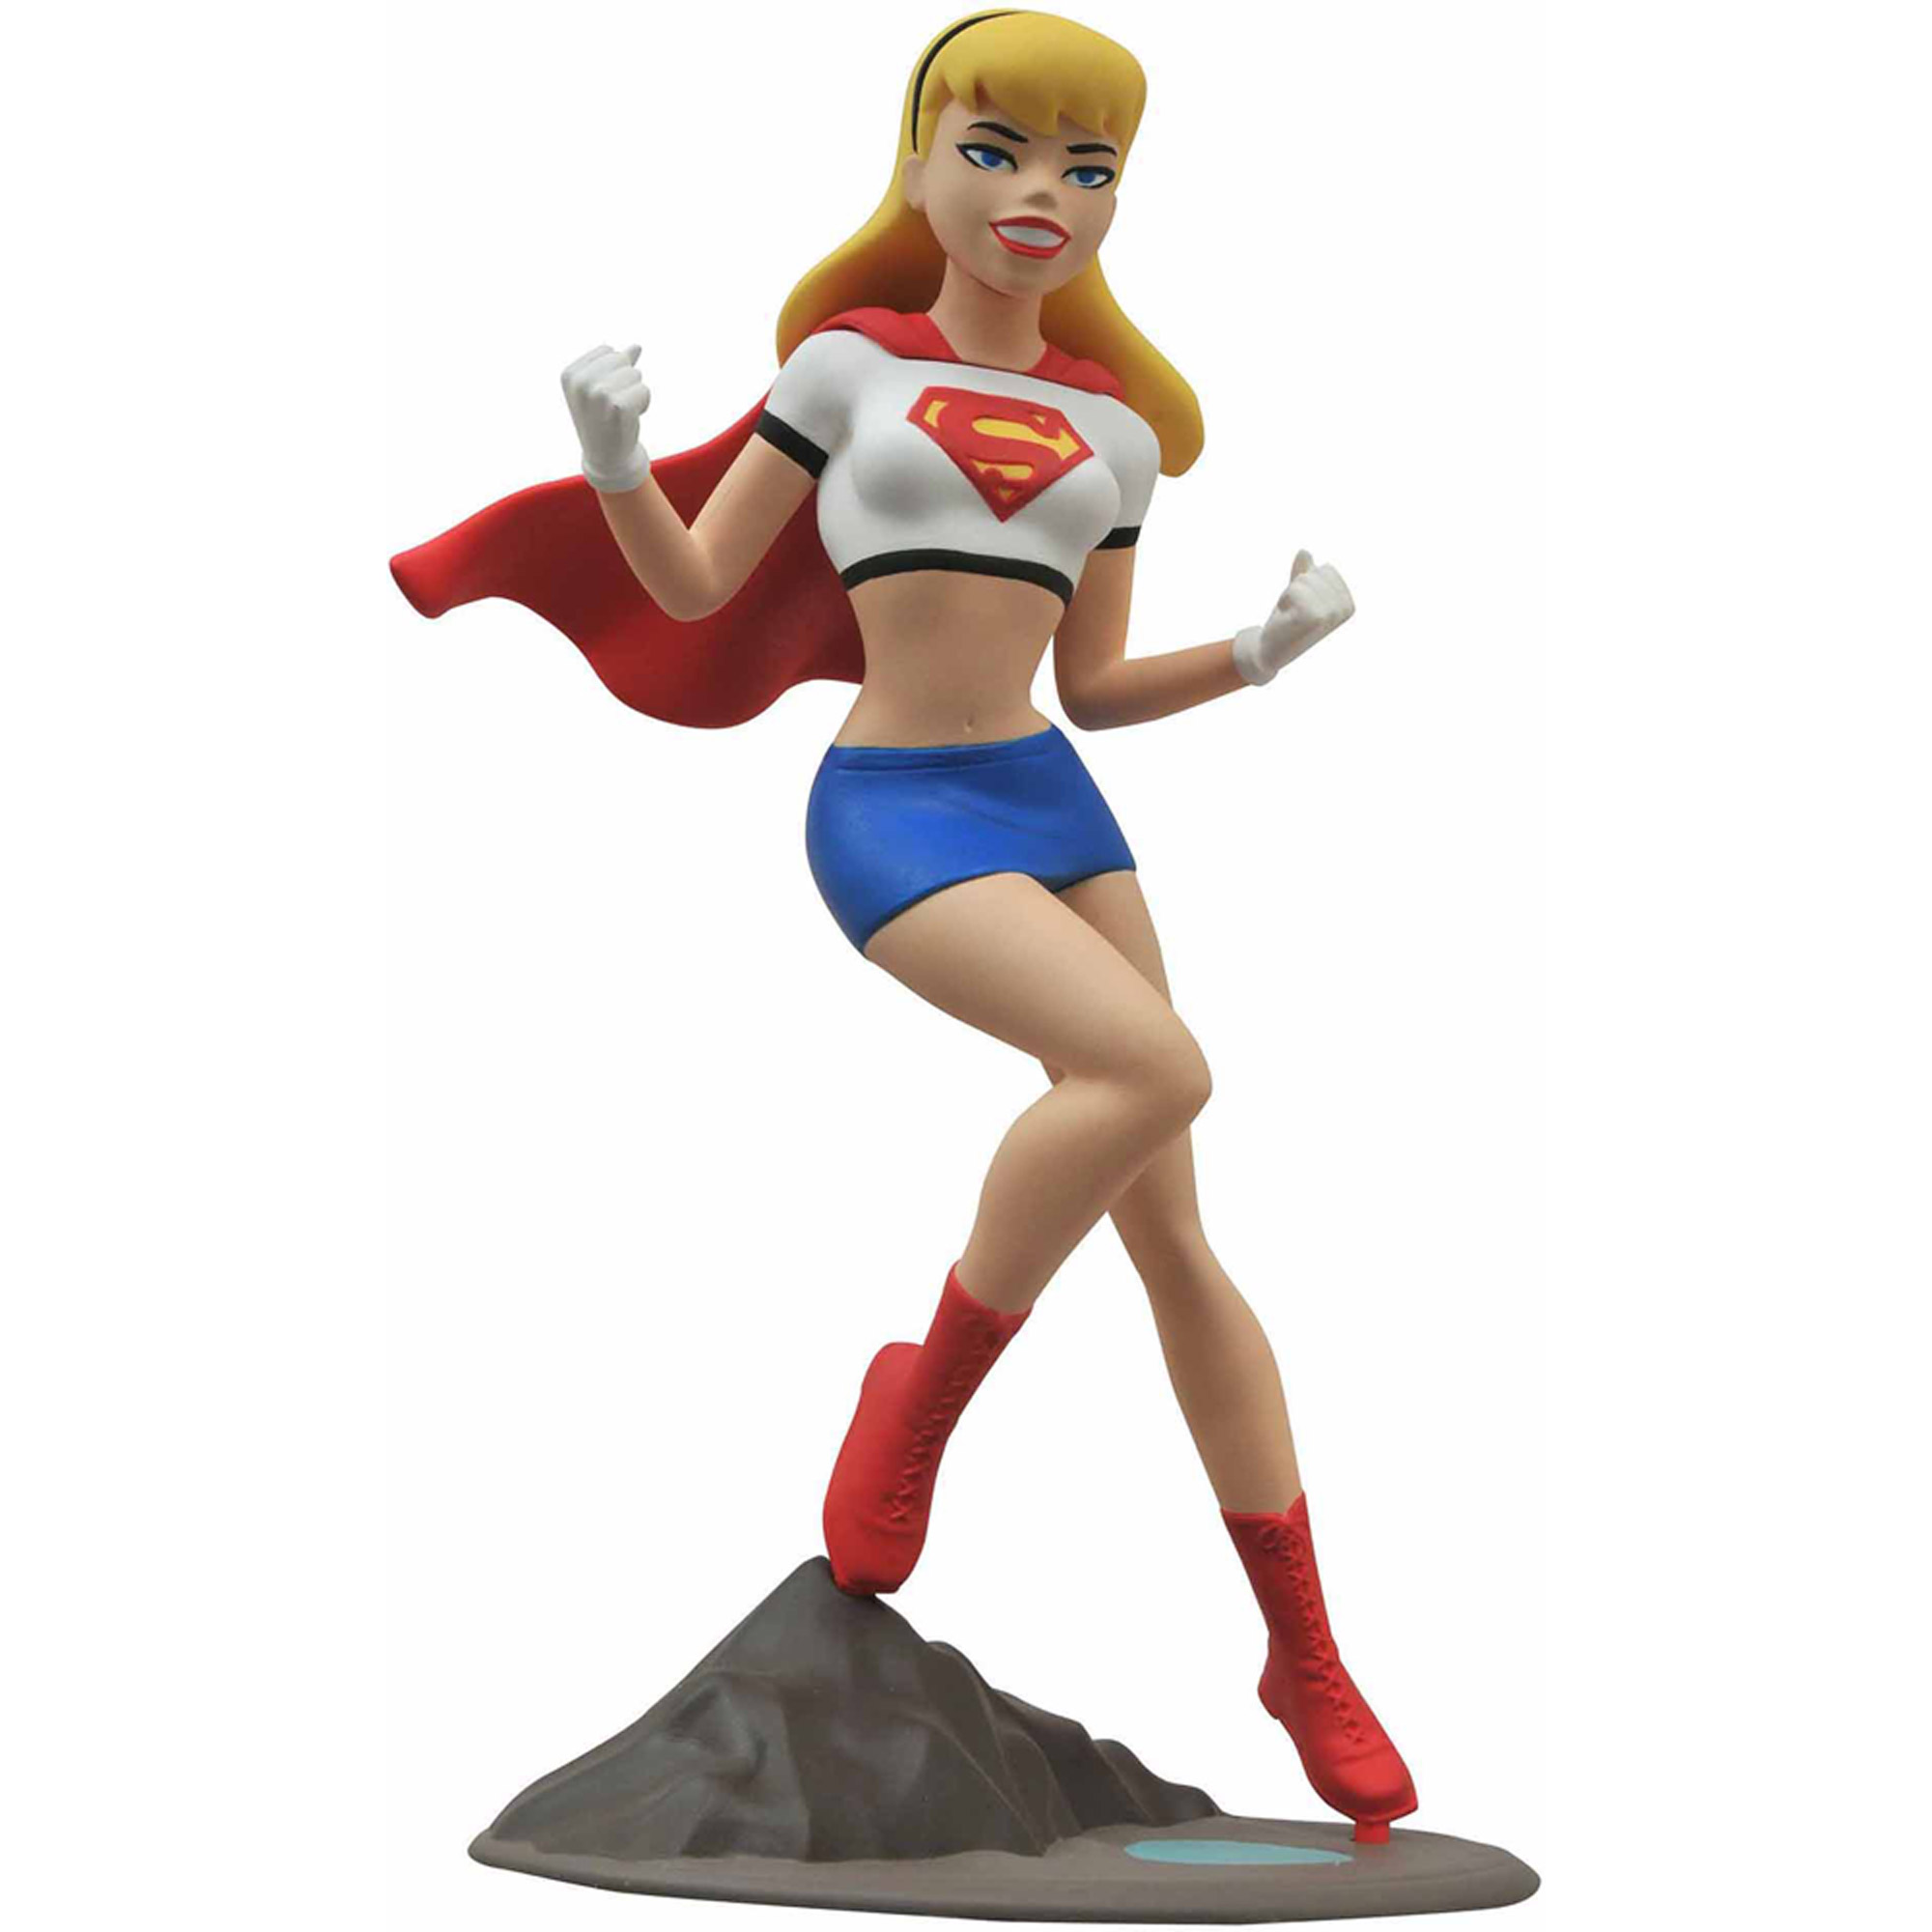 Diamond Select Toys Femme Fatales Superman Animated Supergirl Statue